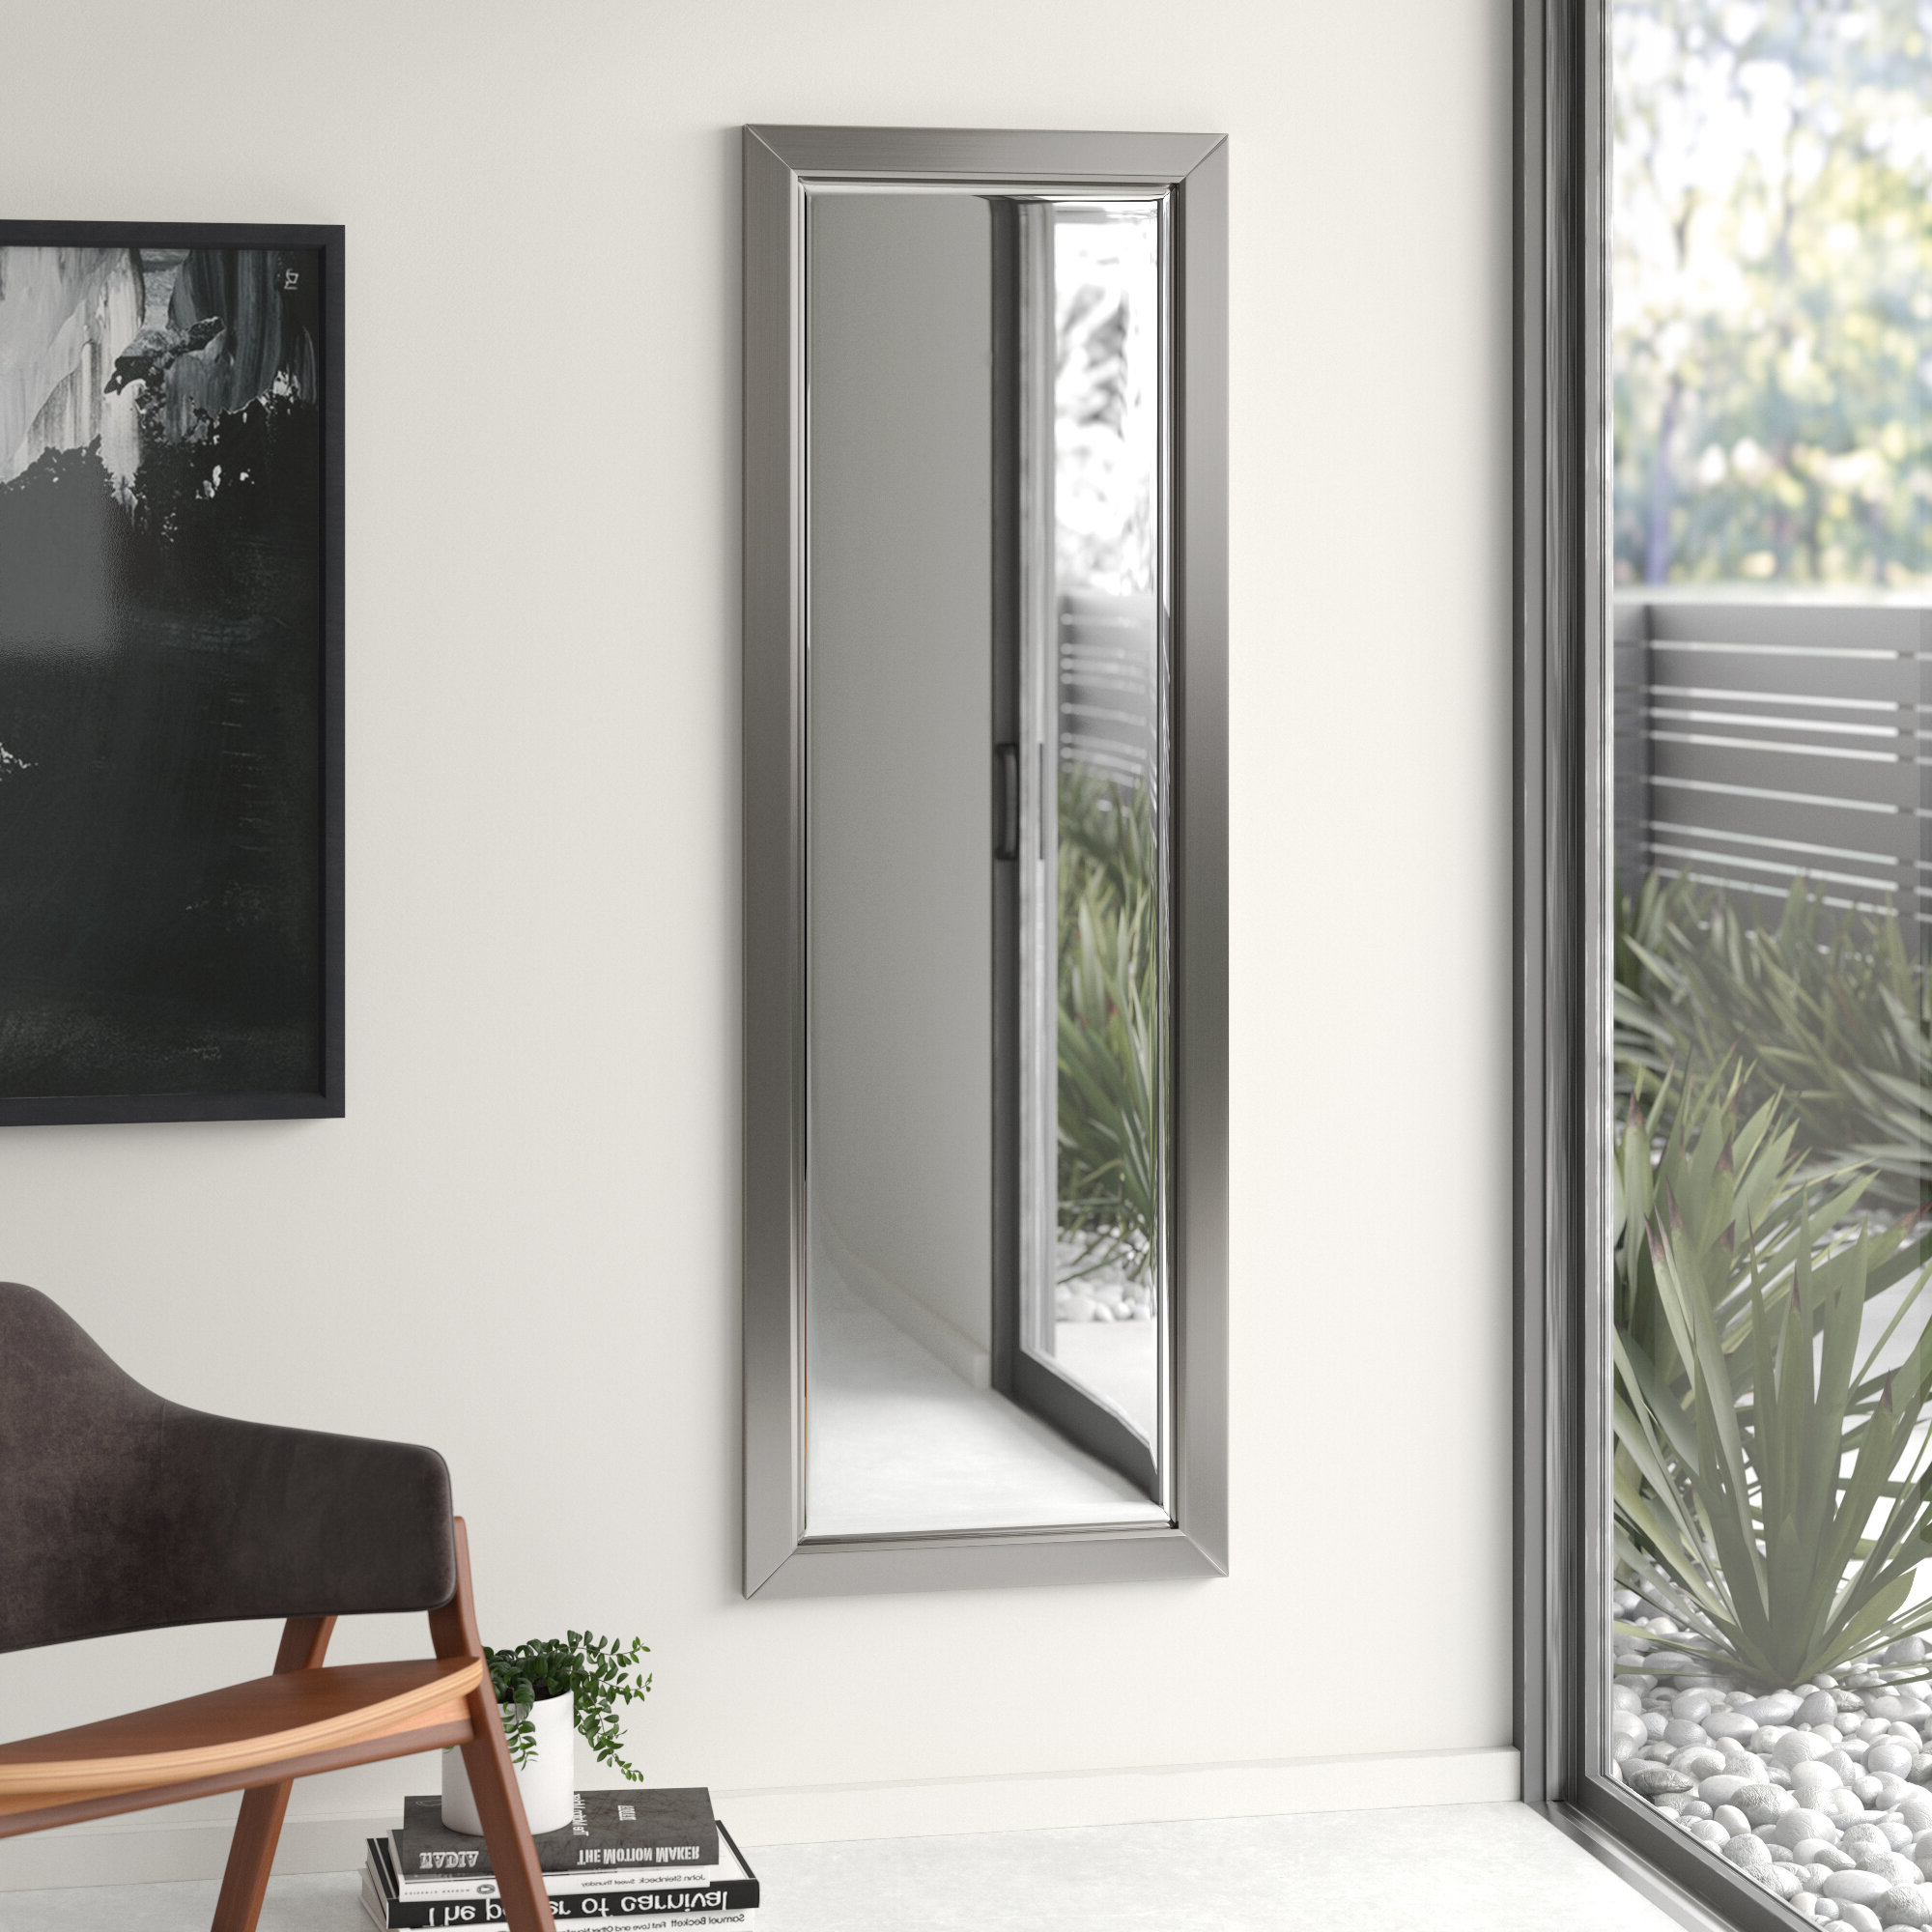 Current Sartain Modern & Contemporary Wall Mirrors Intended For Edge Minimal Modern & Contemporary Full Length Body Mirror (View 4 of 20)